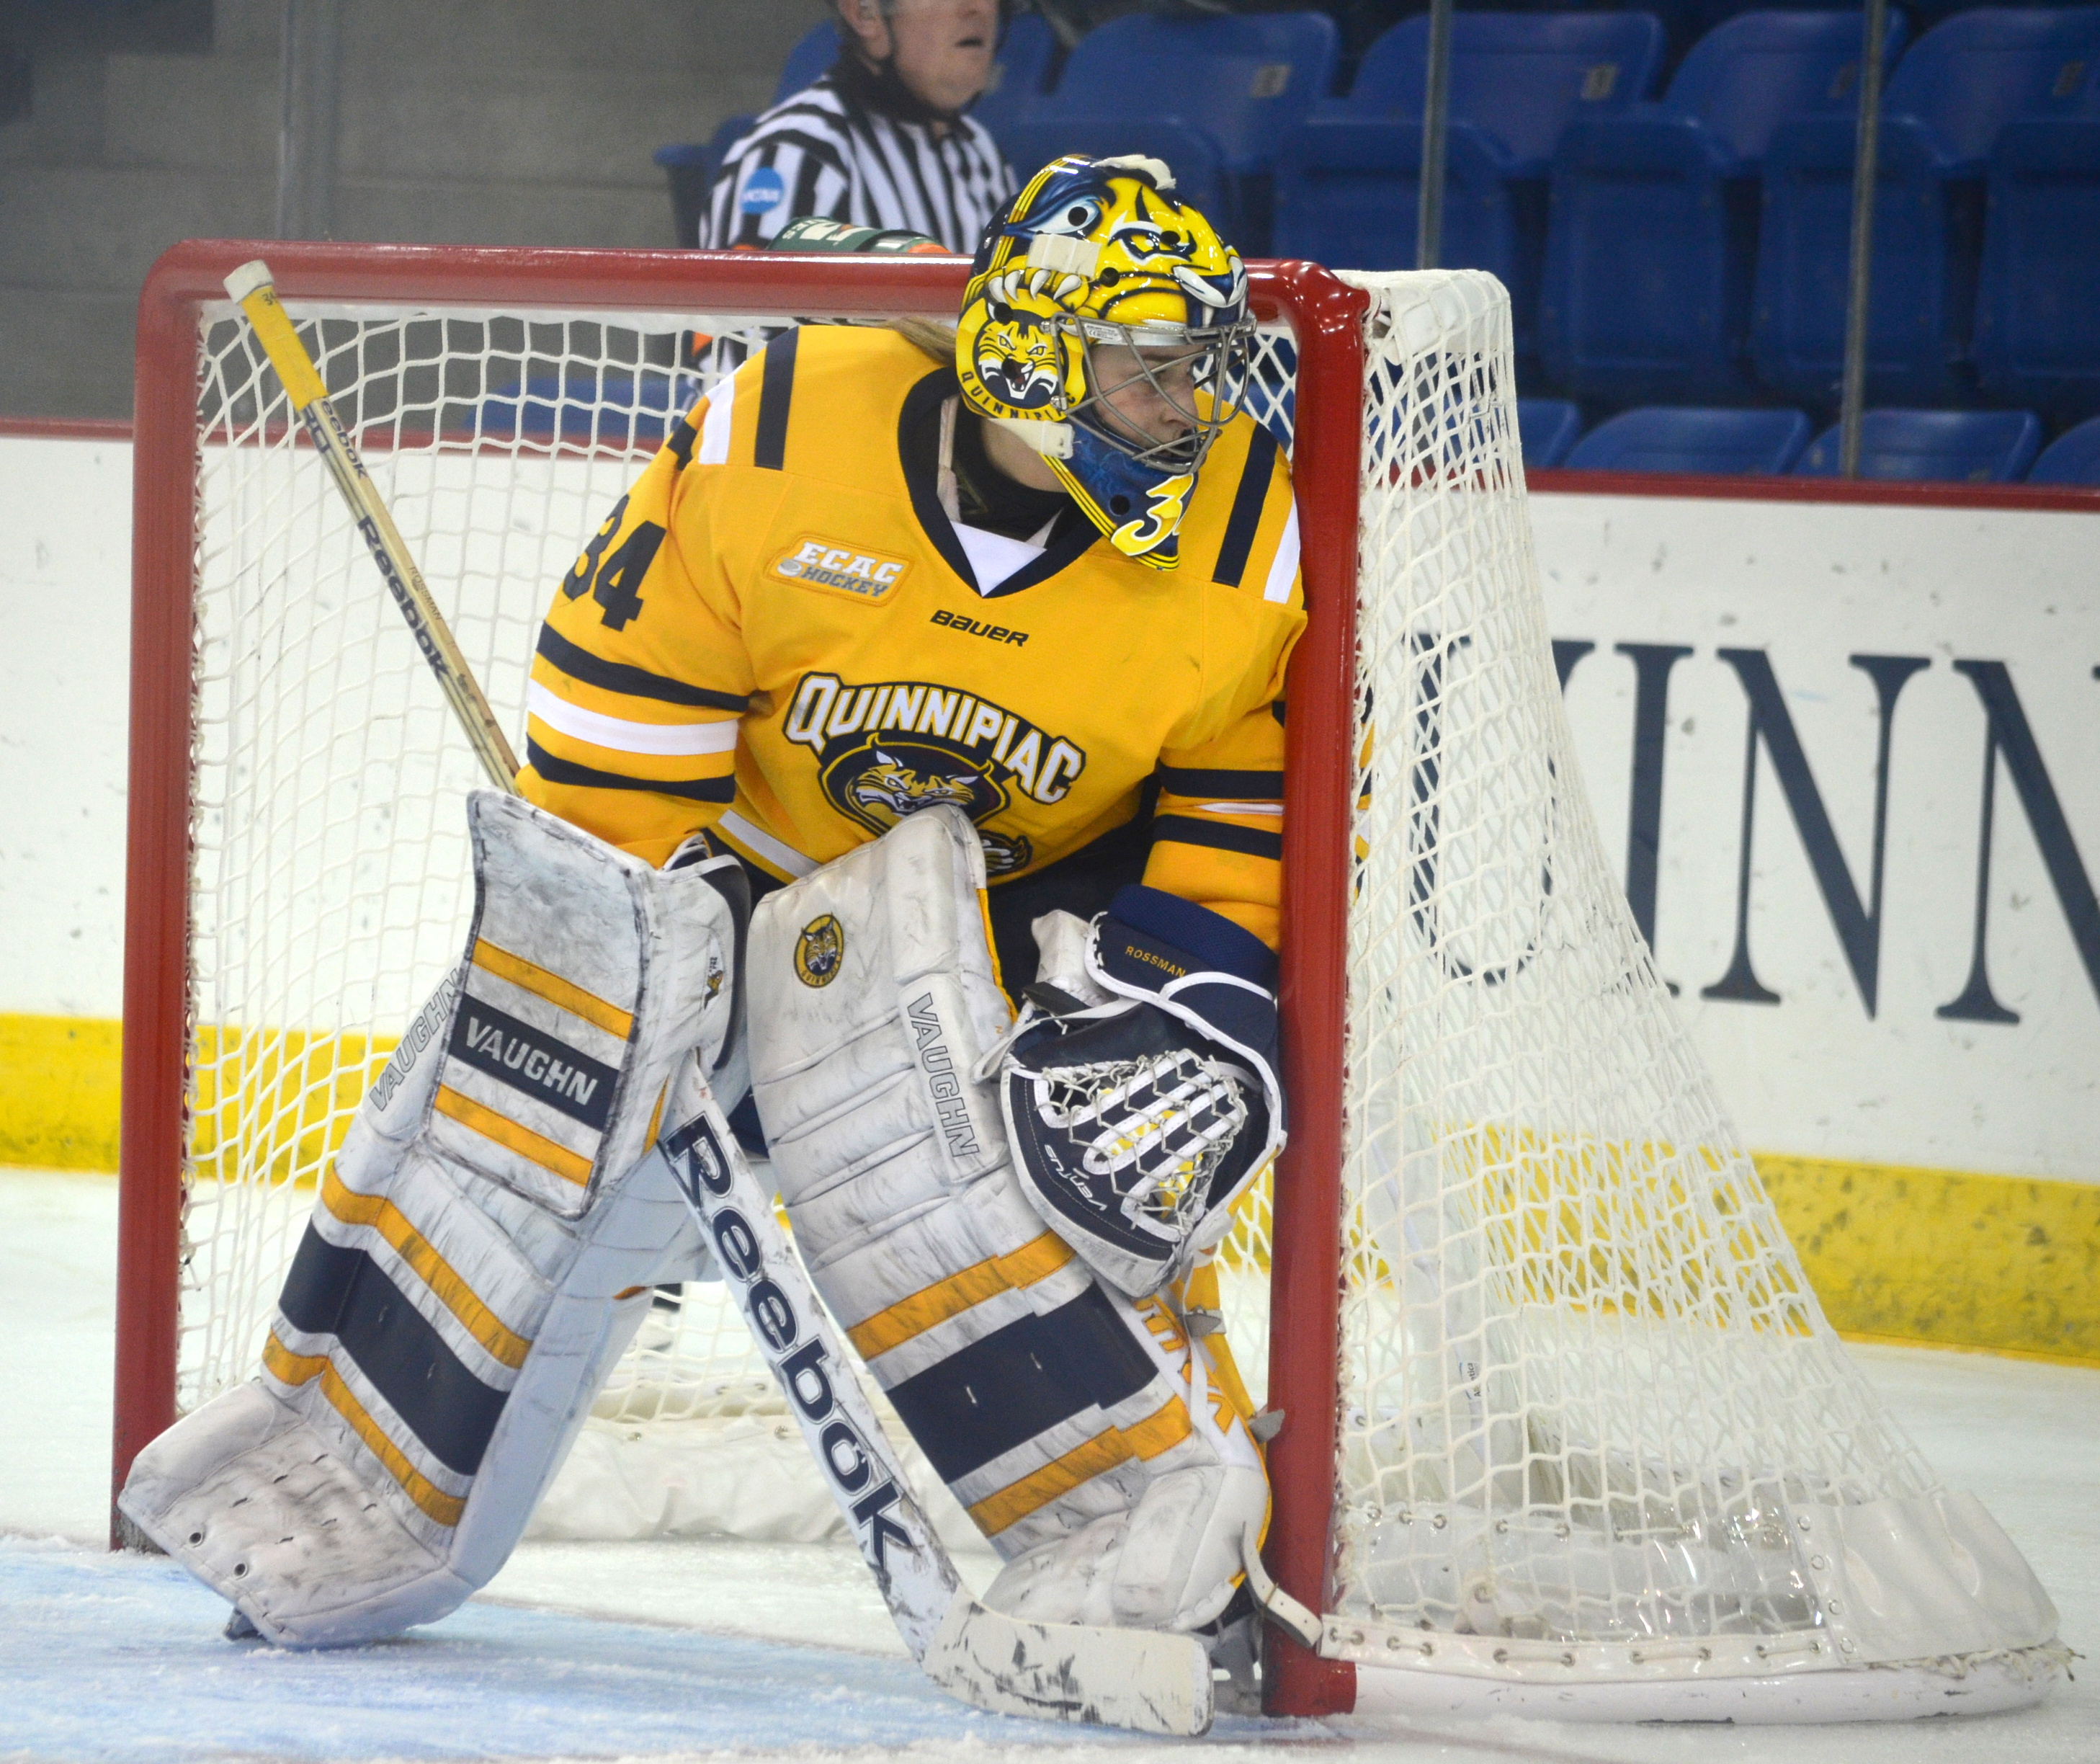 Ambiance Carrelage Saint Leonard women's ice hockey's sydney rossman has made a major impact